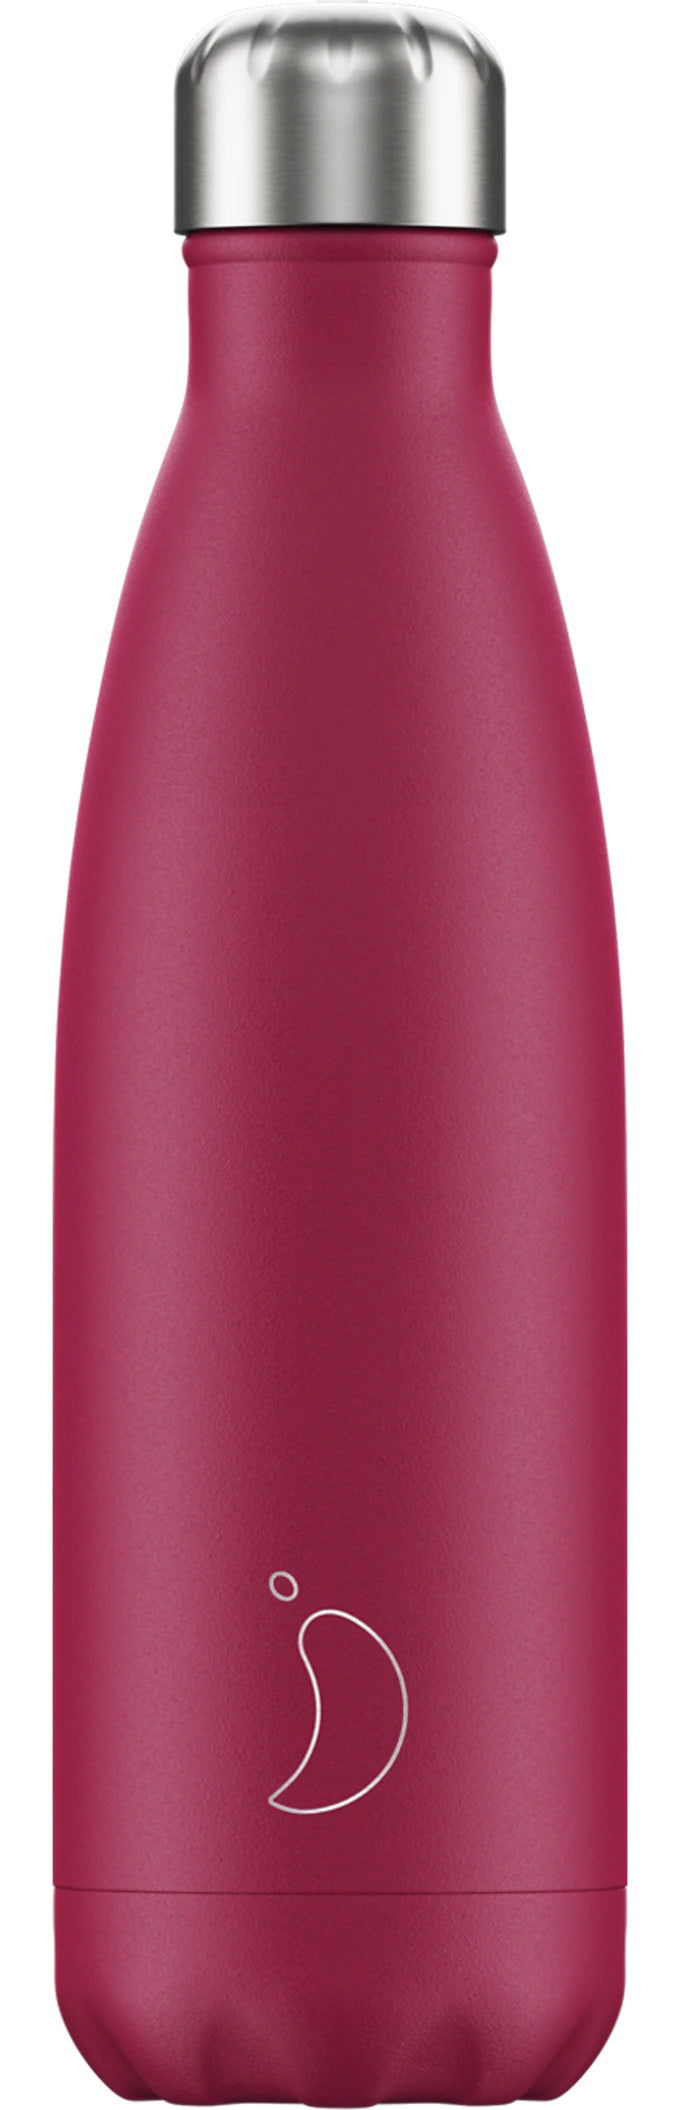 Chilly's Bottles - Mattes Rosa